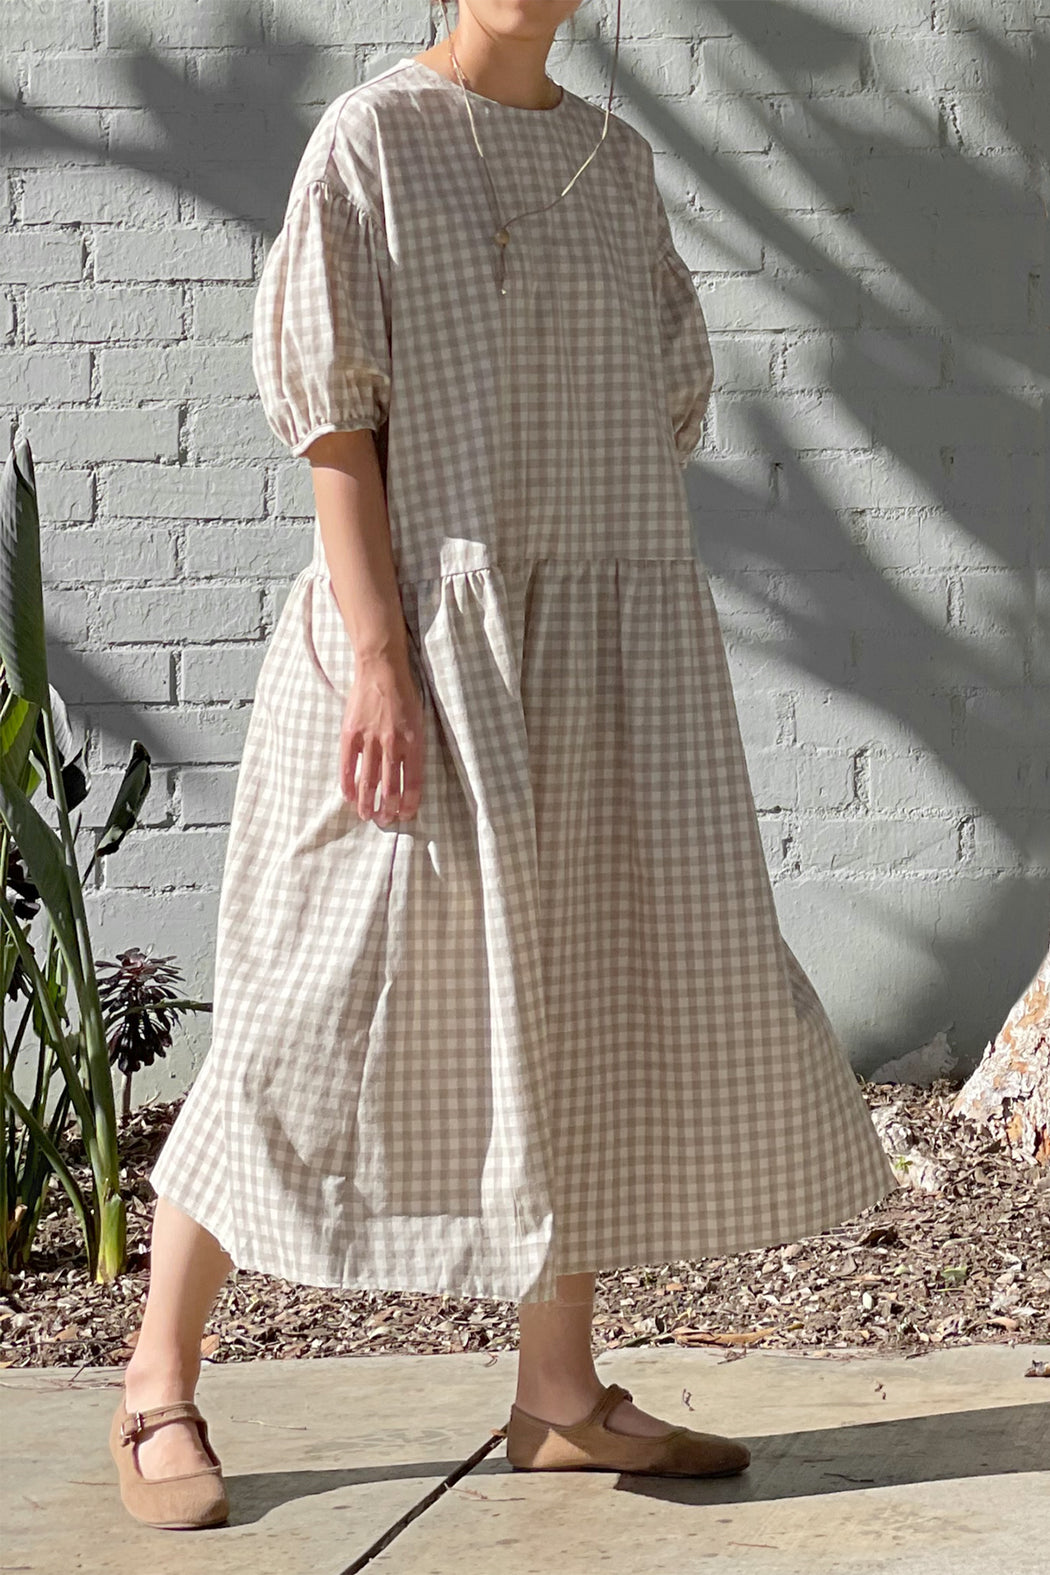 April Meets October | Summer May Dress | Beige | Hazel & Rose | Minneapolis